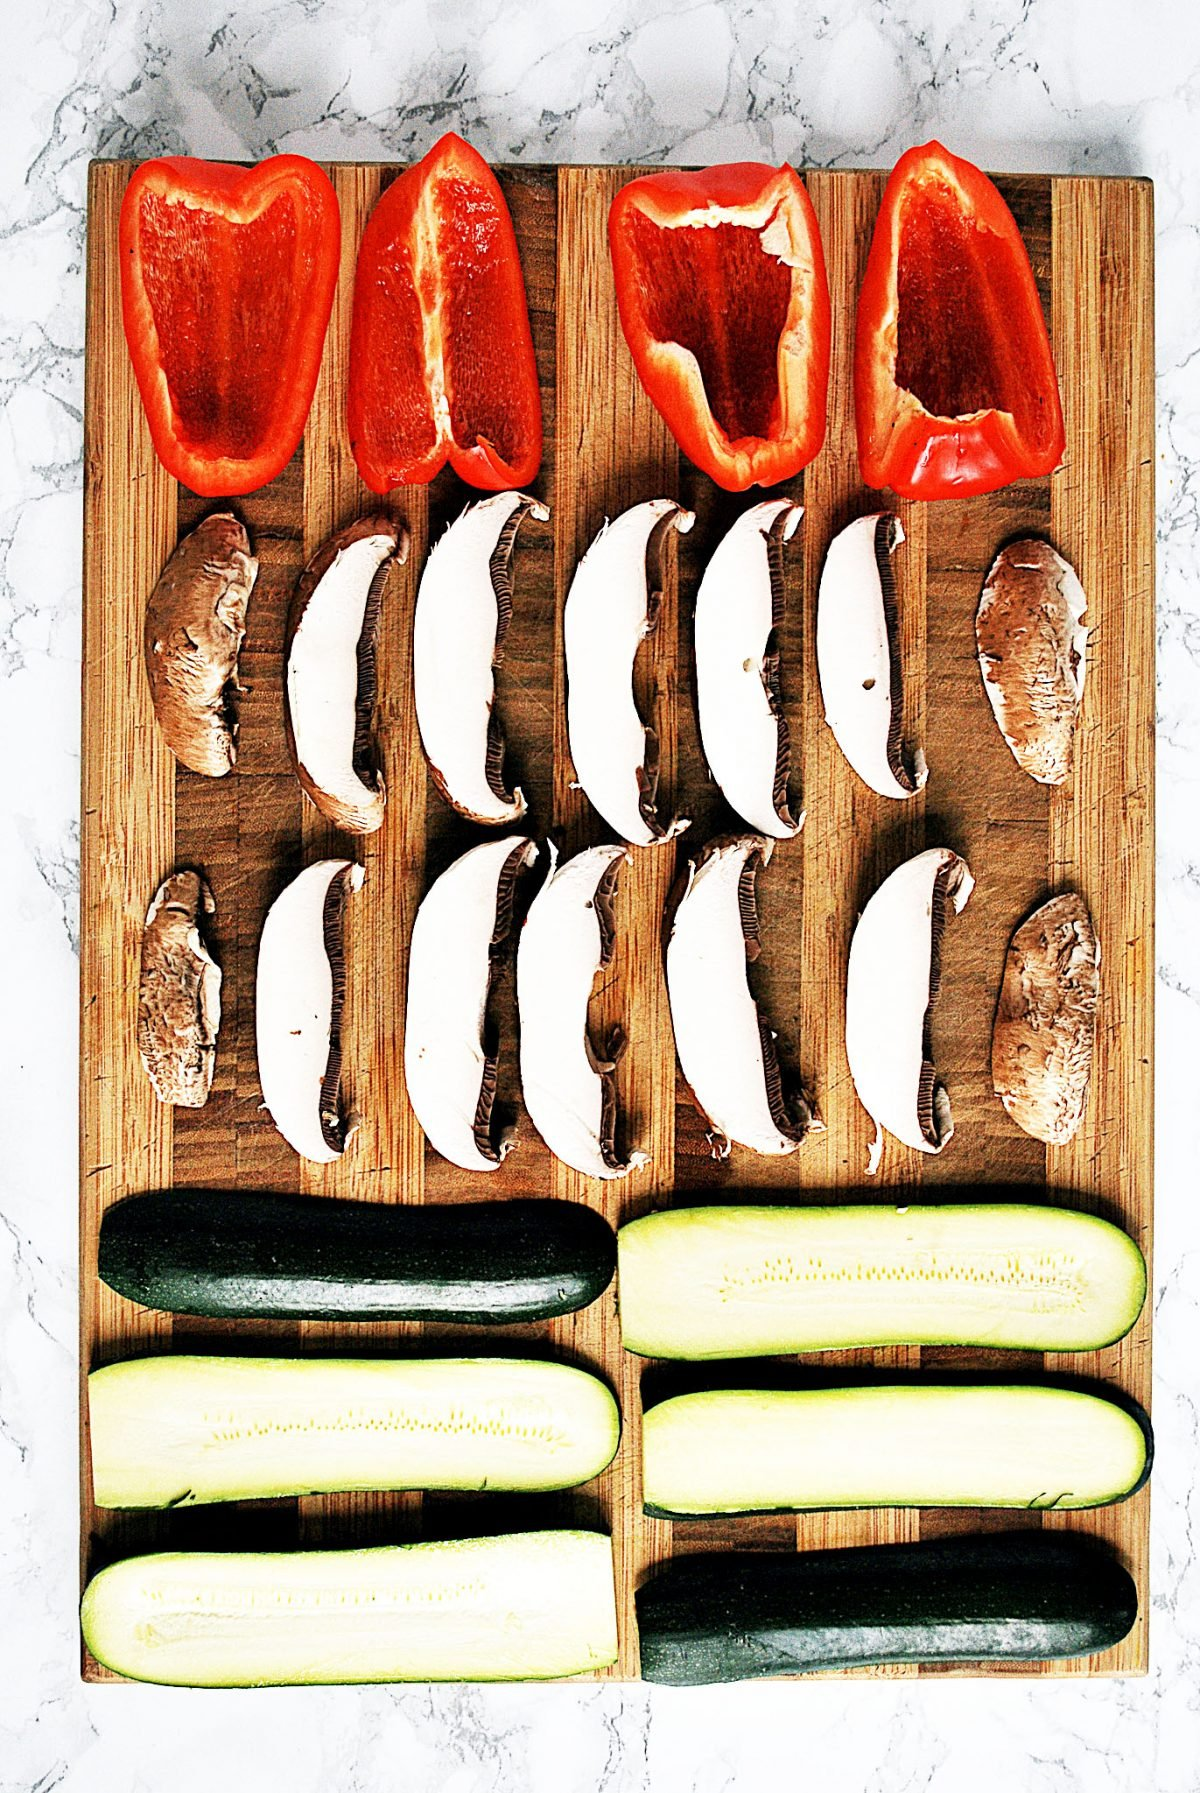 A cutting board with sliced red peppers, portobello mushrooms, and zucchini on it.